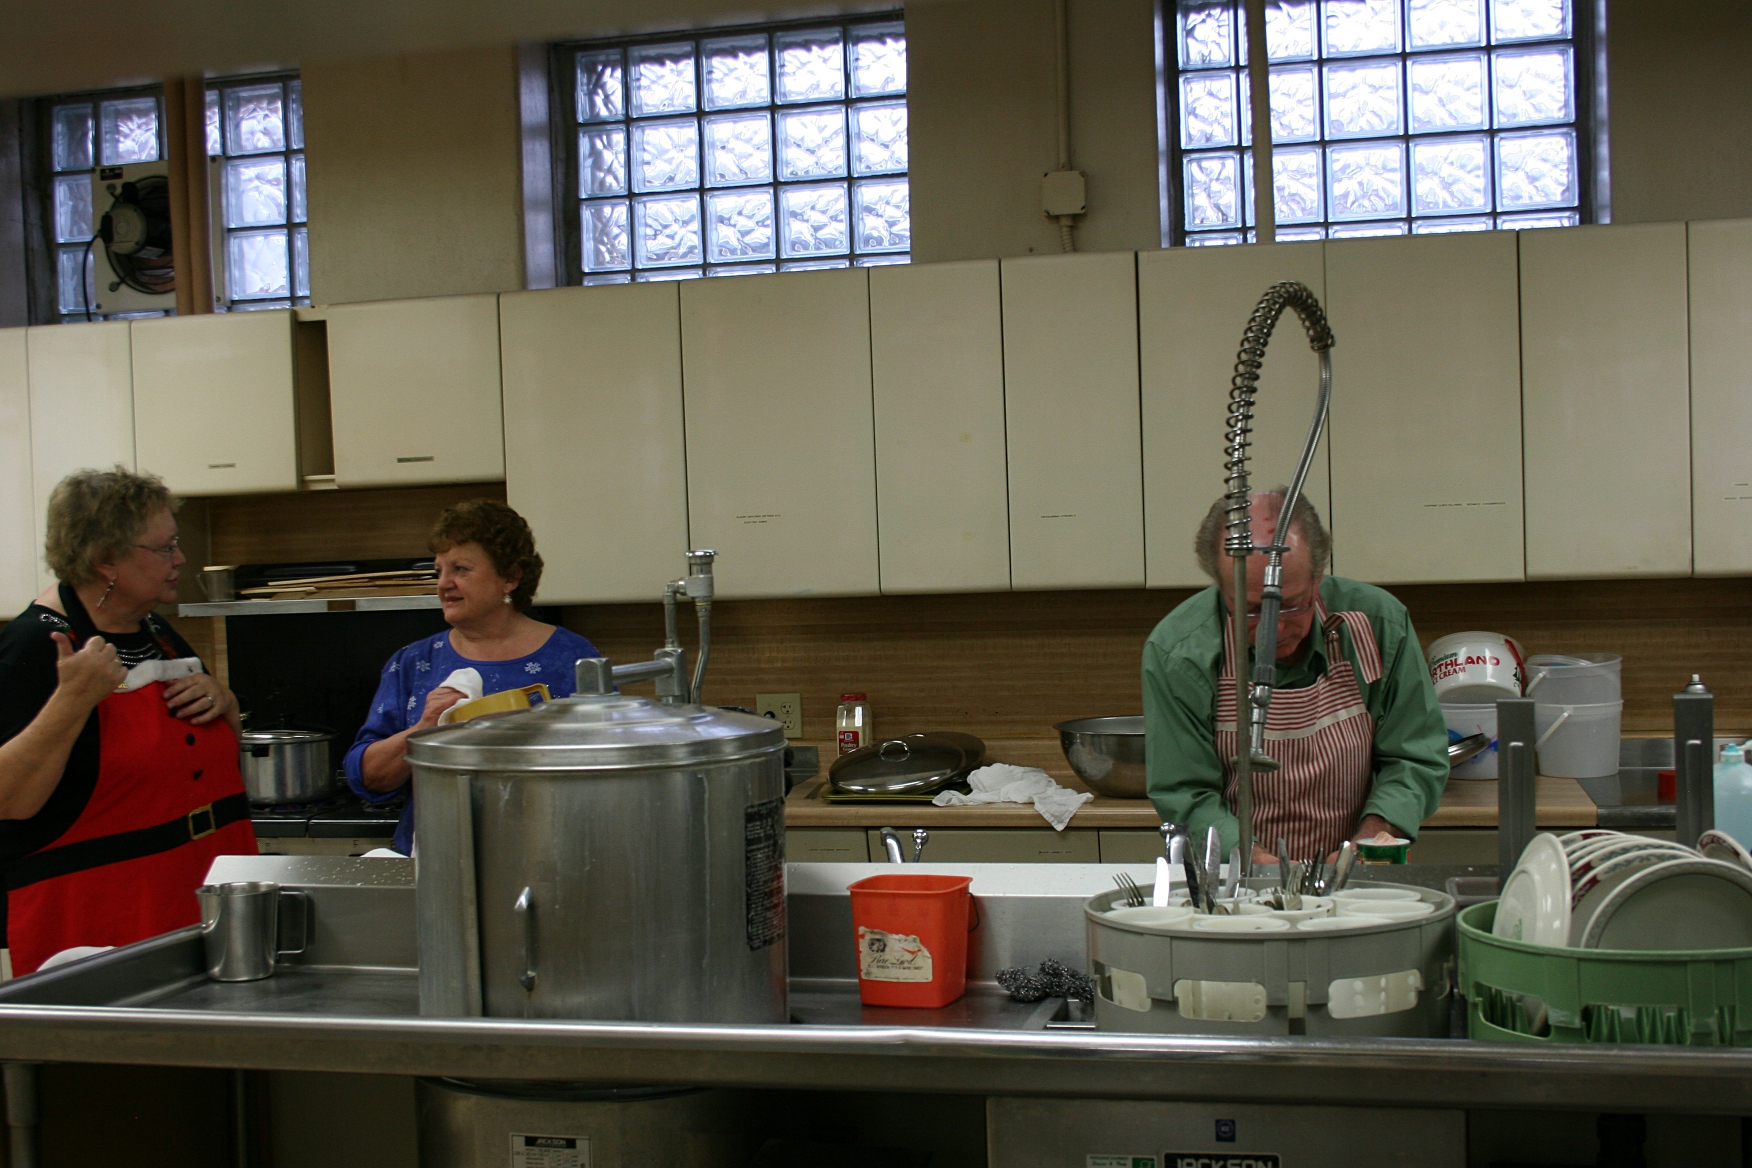 In the kitchen, a team of workers tended the food and washed the dishes, etc.